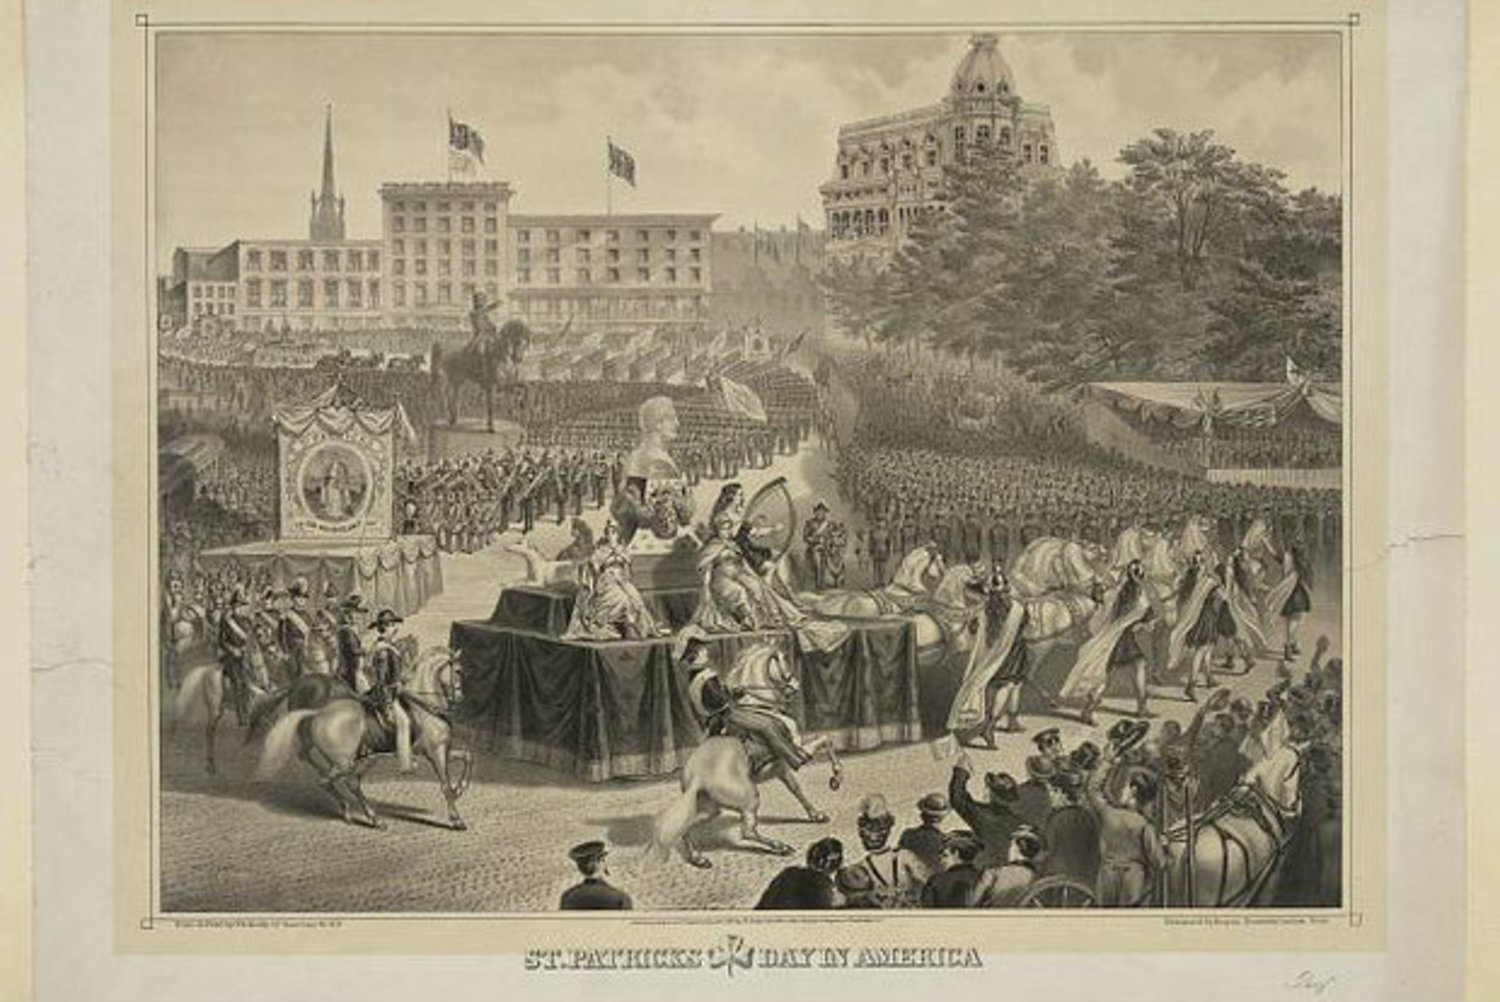 A 1974 lithograph print shows the portion of a St. Patrick's Day parade in Union Square.